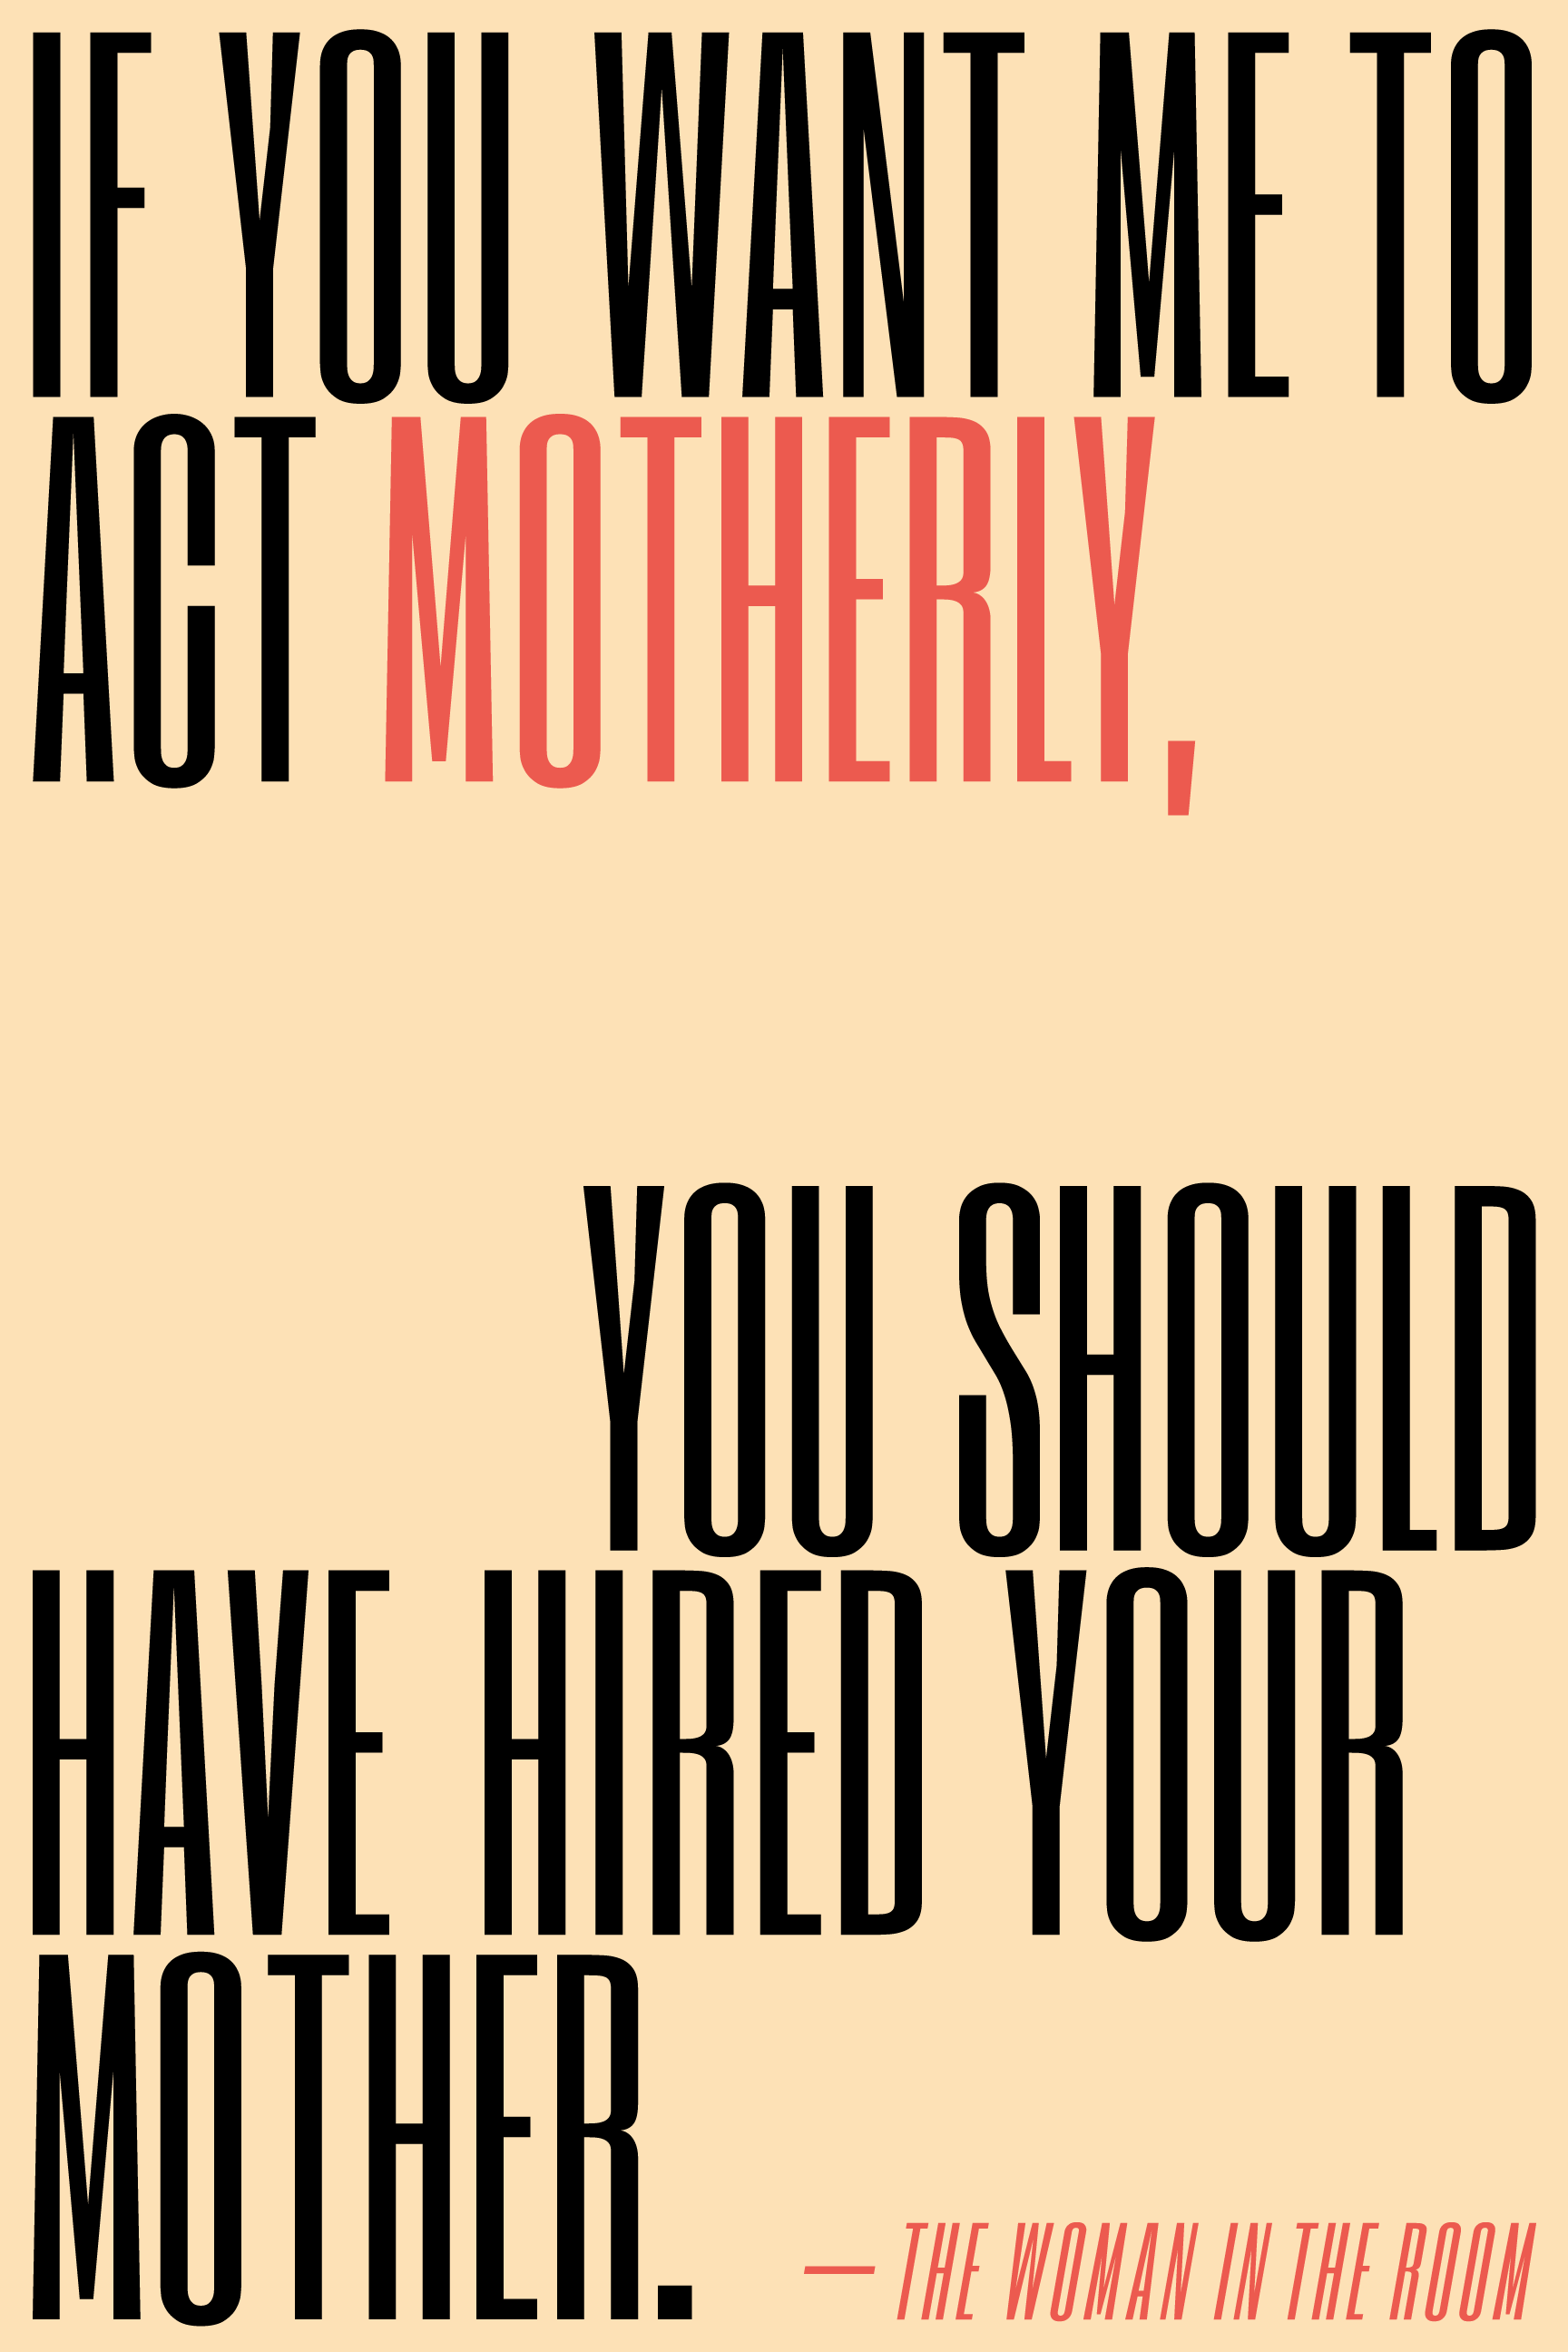 If you want me to act motherly, you should have hired your mother.